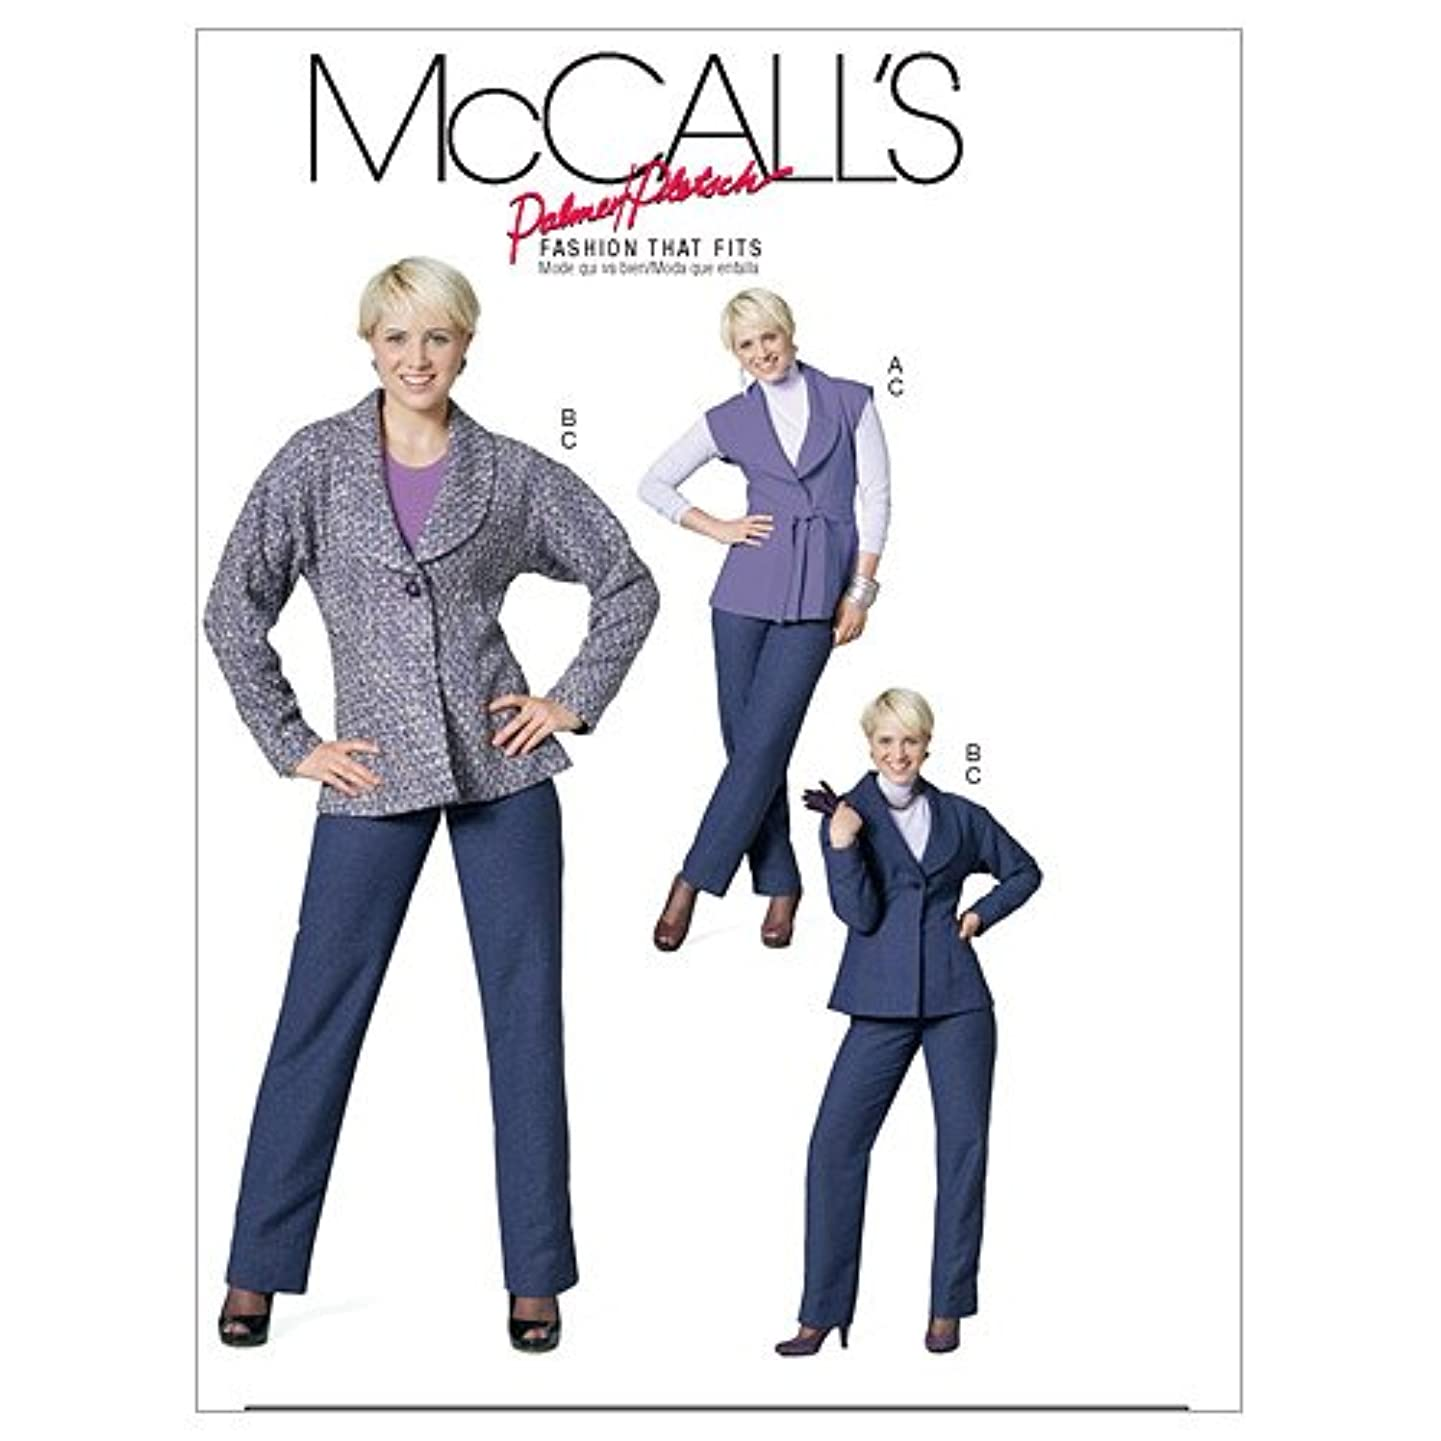 McCall's Patterns M6211 Misses' Lined Vest and Jacket; Belt and Pants, Size BB (8-10-12-14)